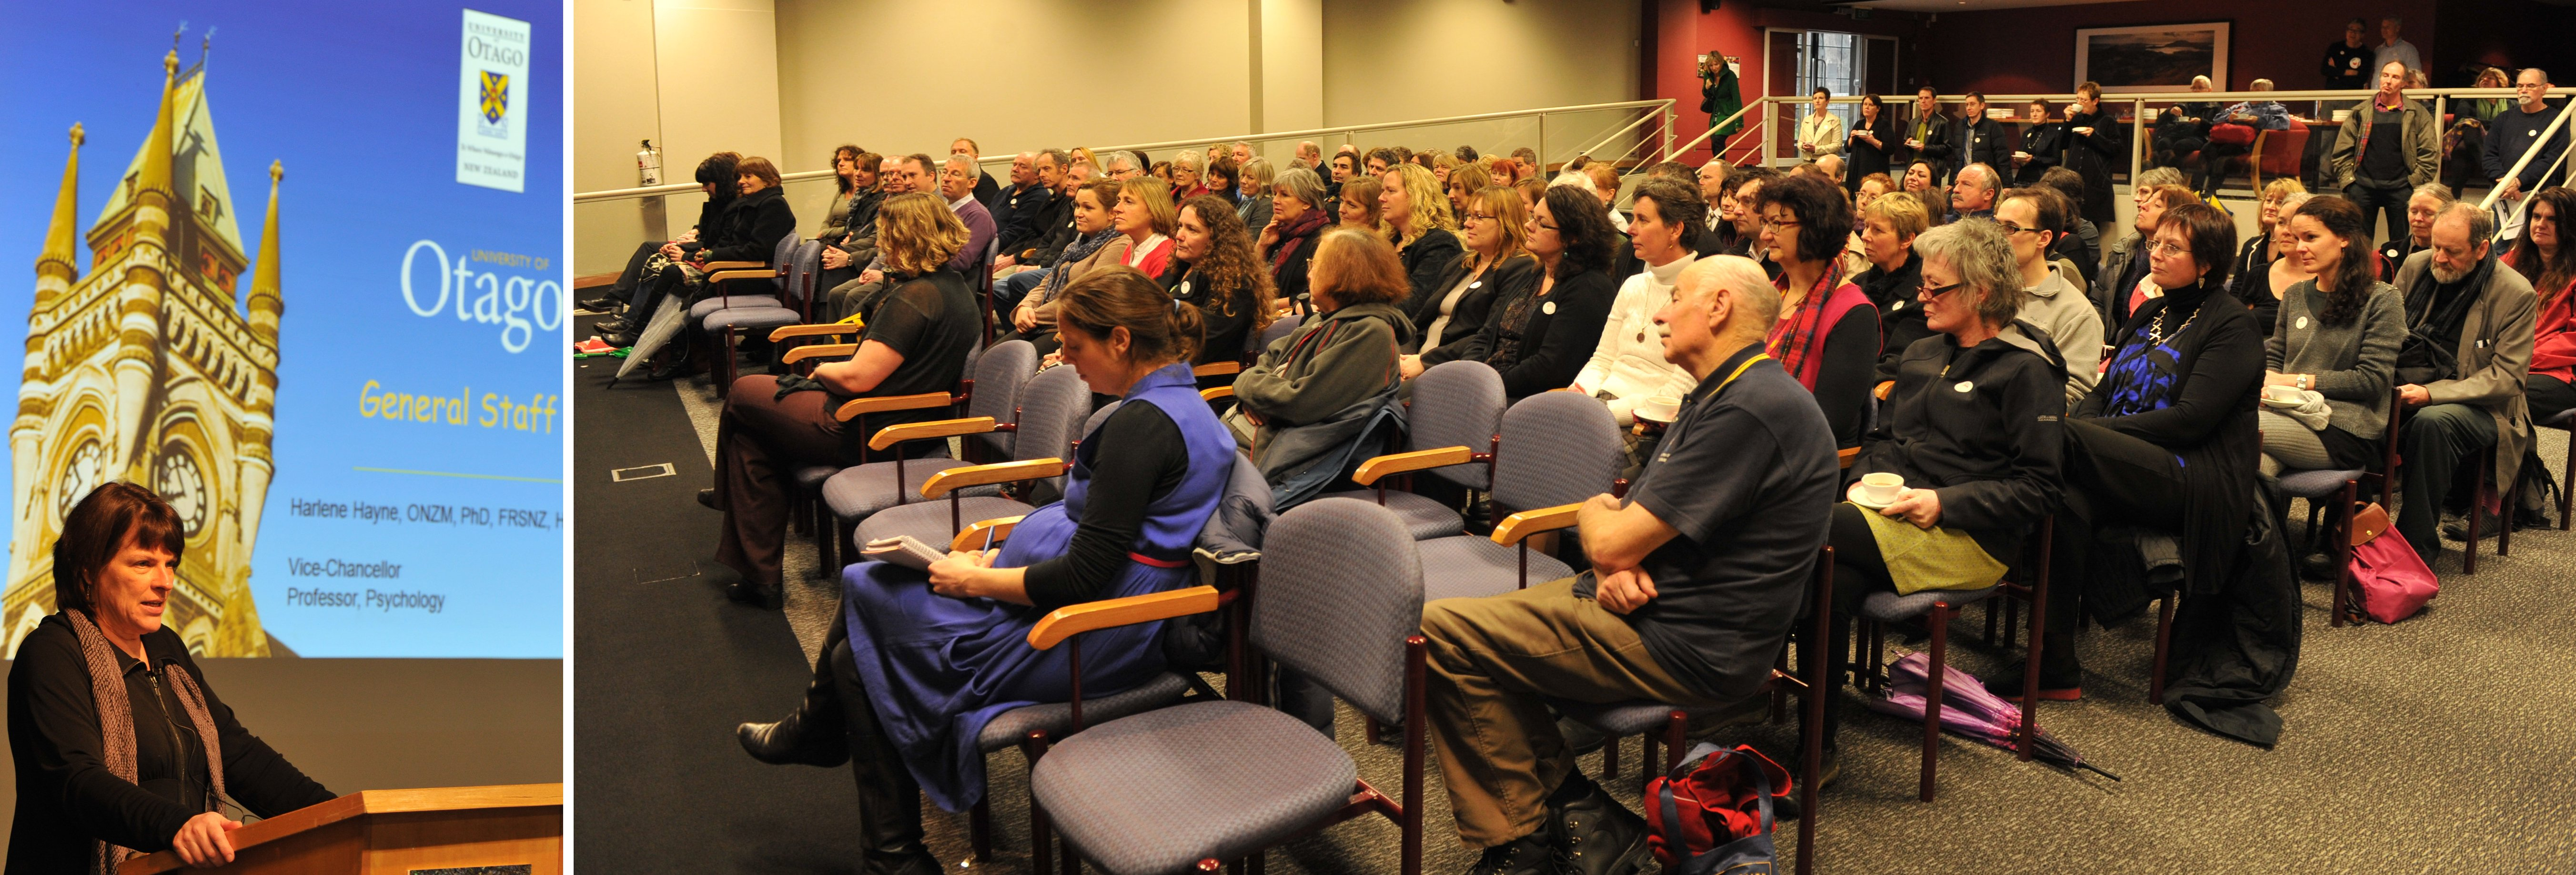 Prof Harlene Hayne addresses University of Otago general staff. Photo: Craig Baxter